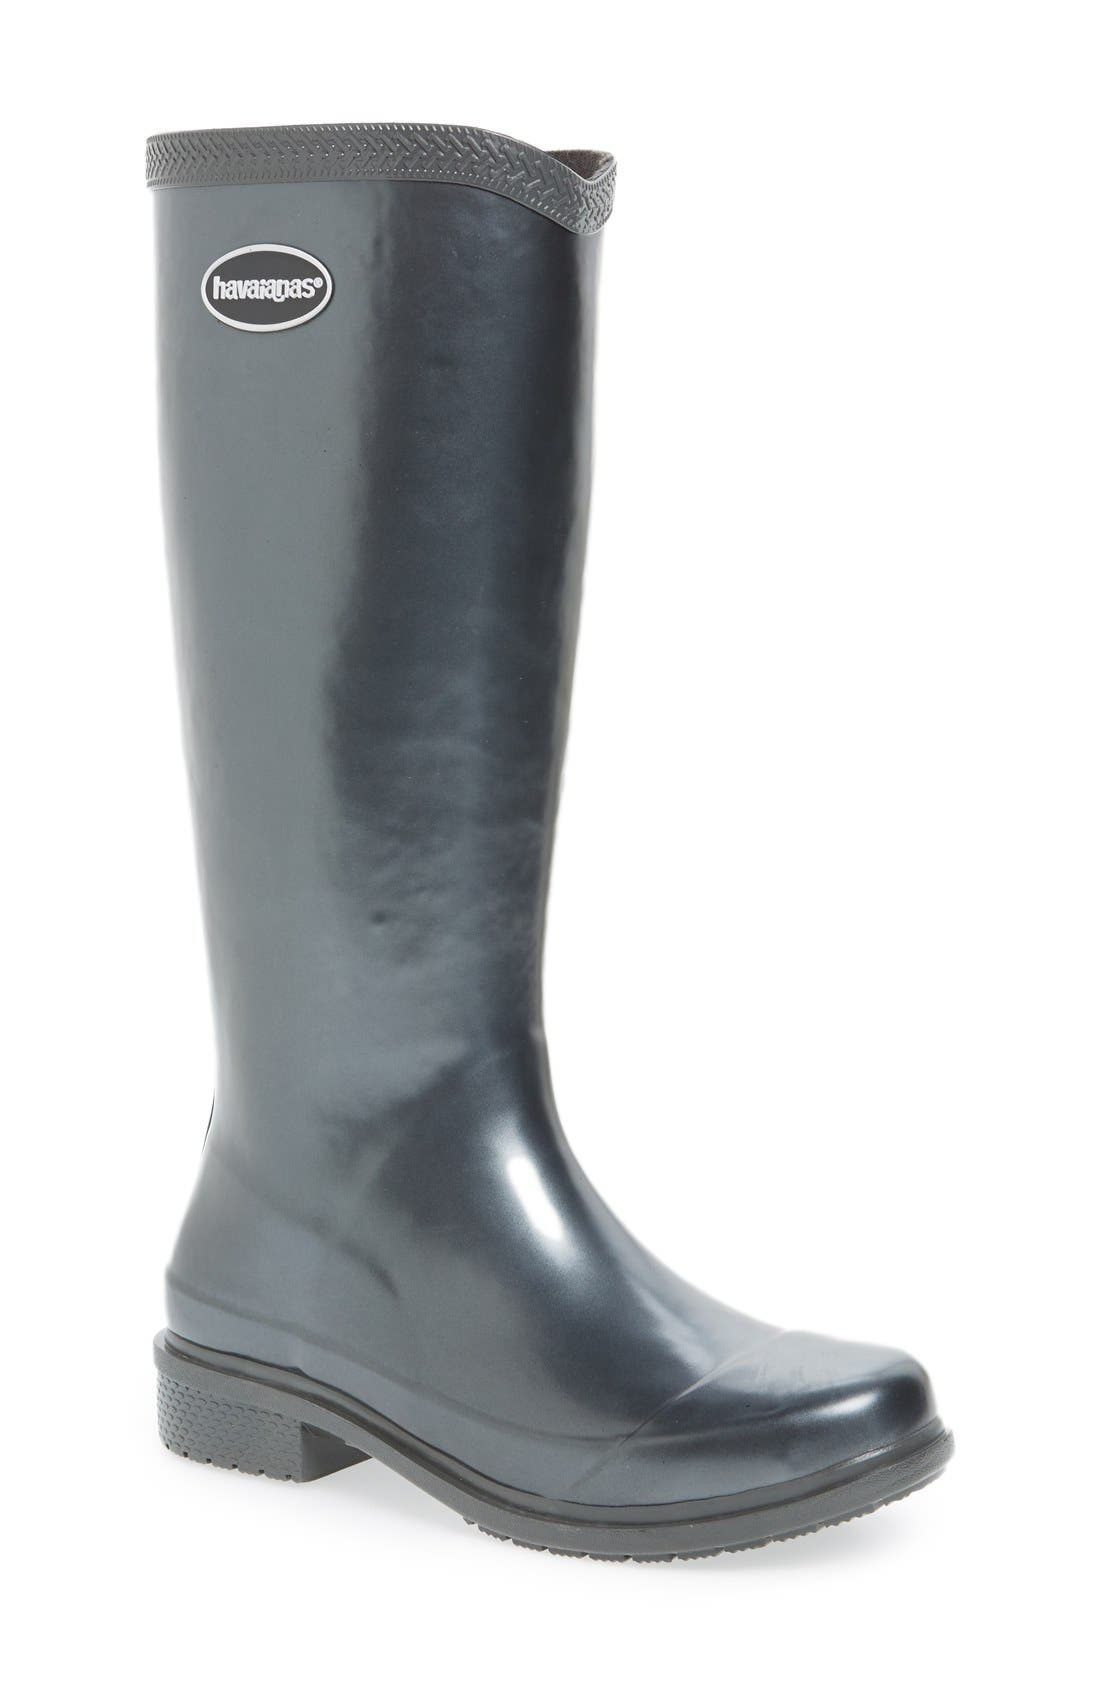 HAVAIANAS 'Galochas Hi Metallic' Waterproof Rain Boot